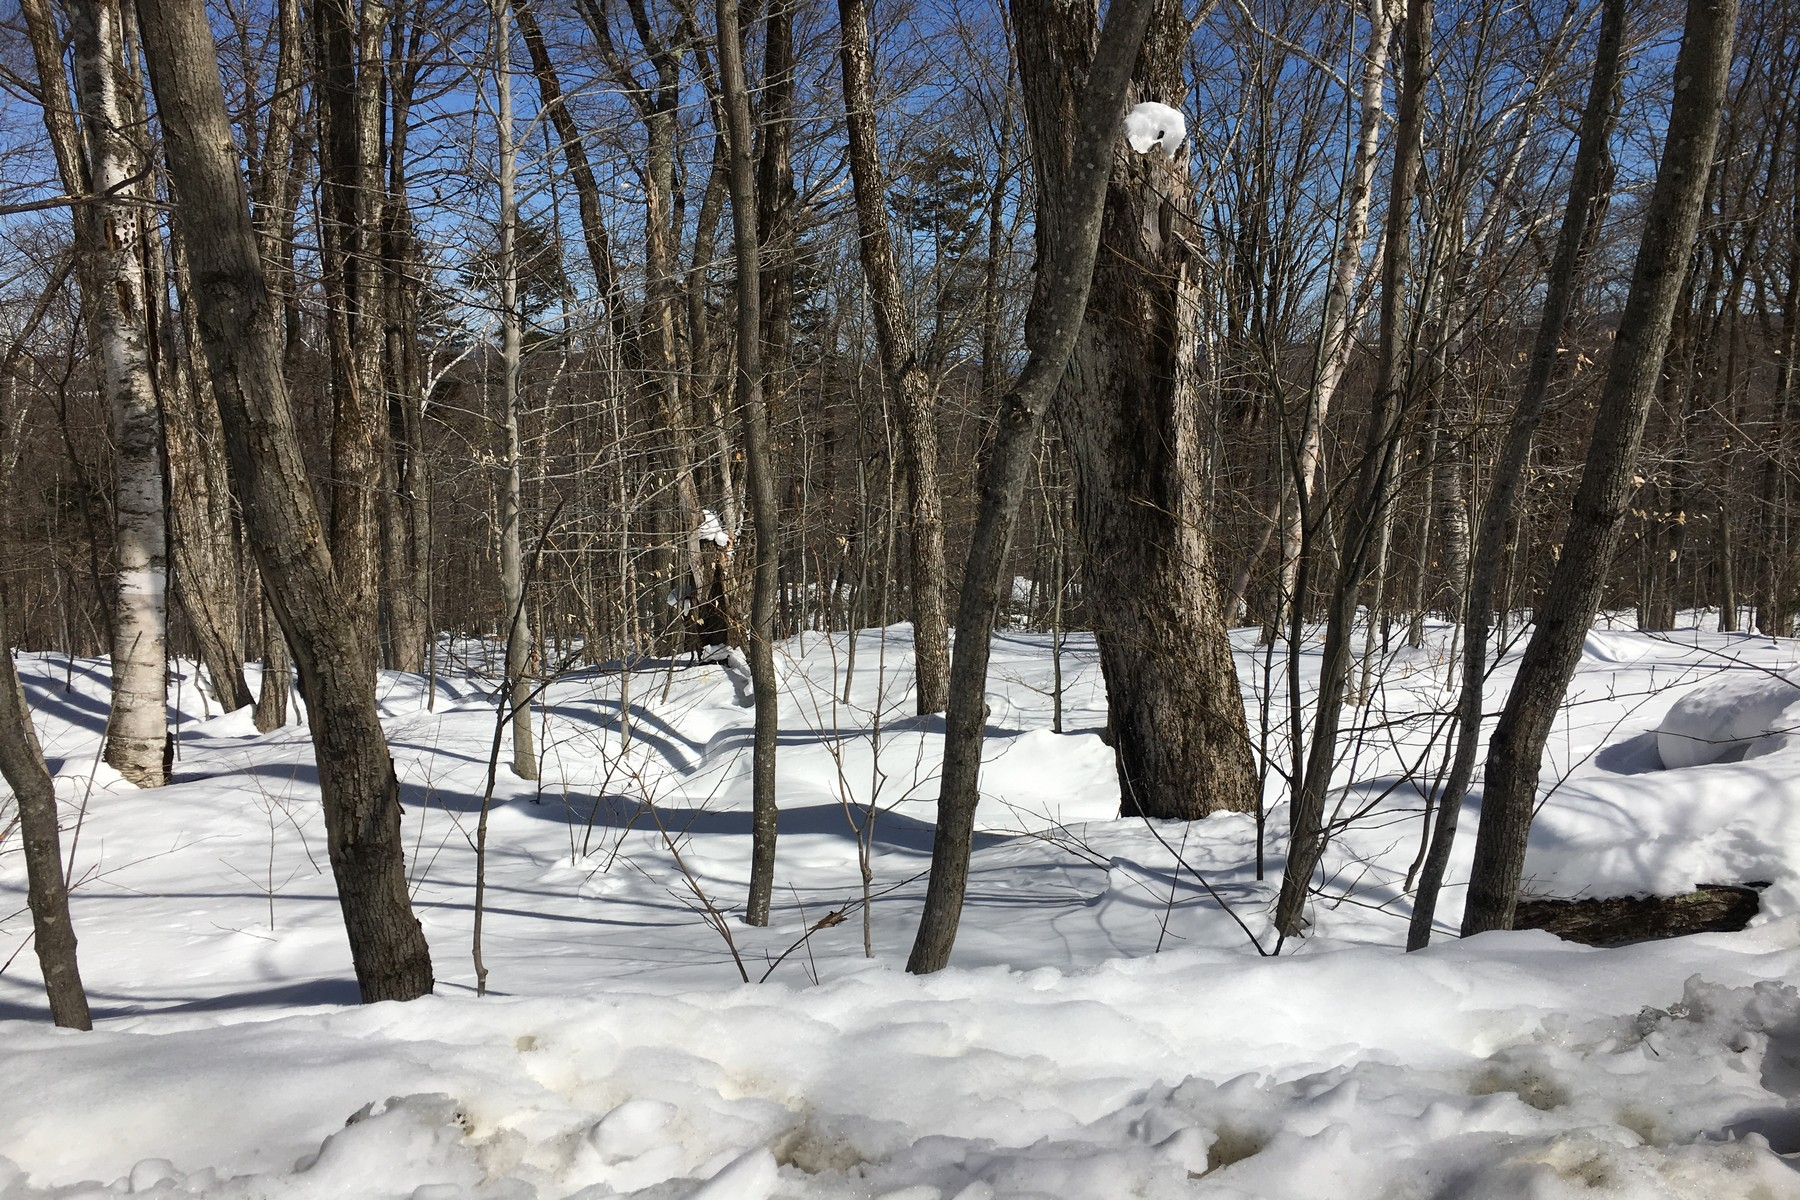 Land for Sale at Birch Hill Road, Windham Birch Hill Rd Windham, Vermont 05359 United States